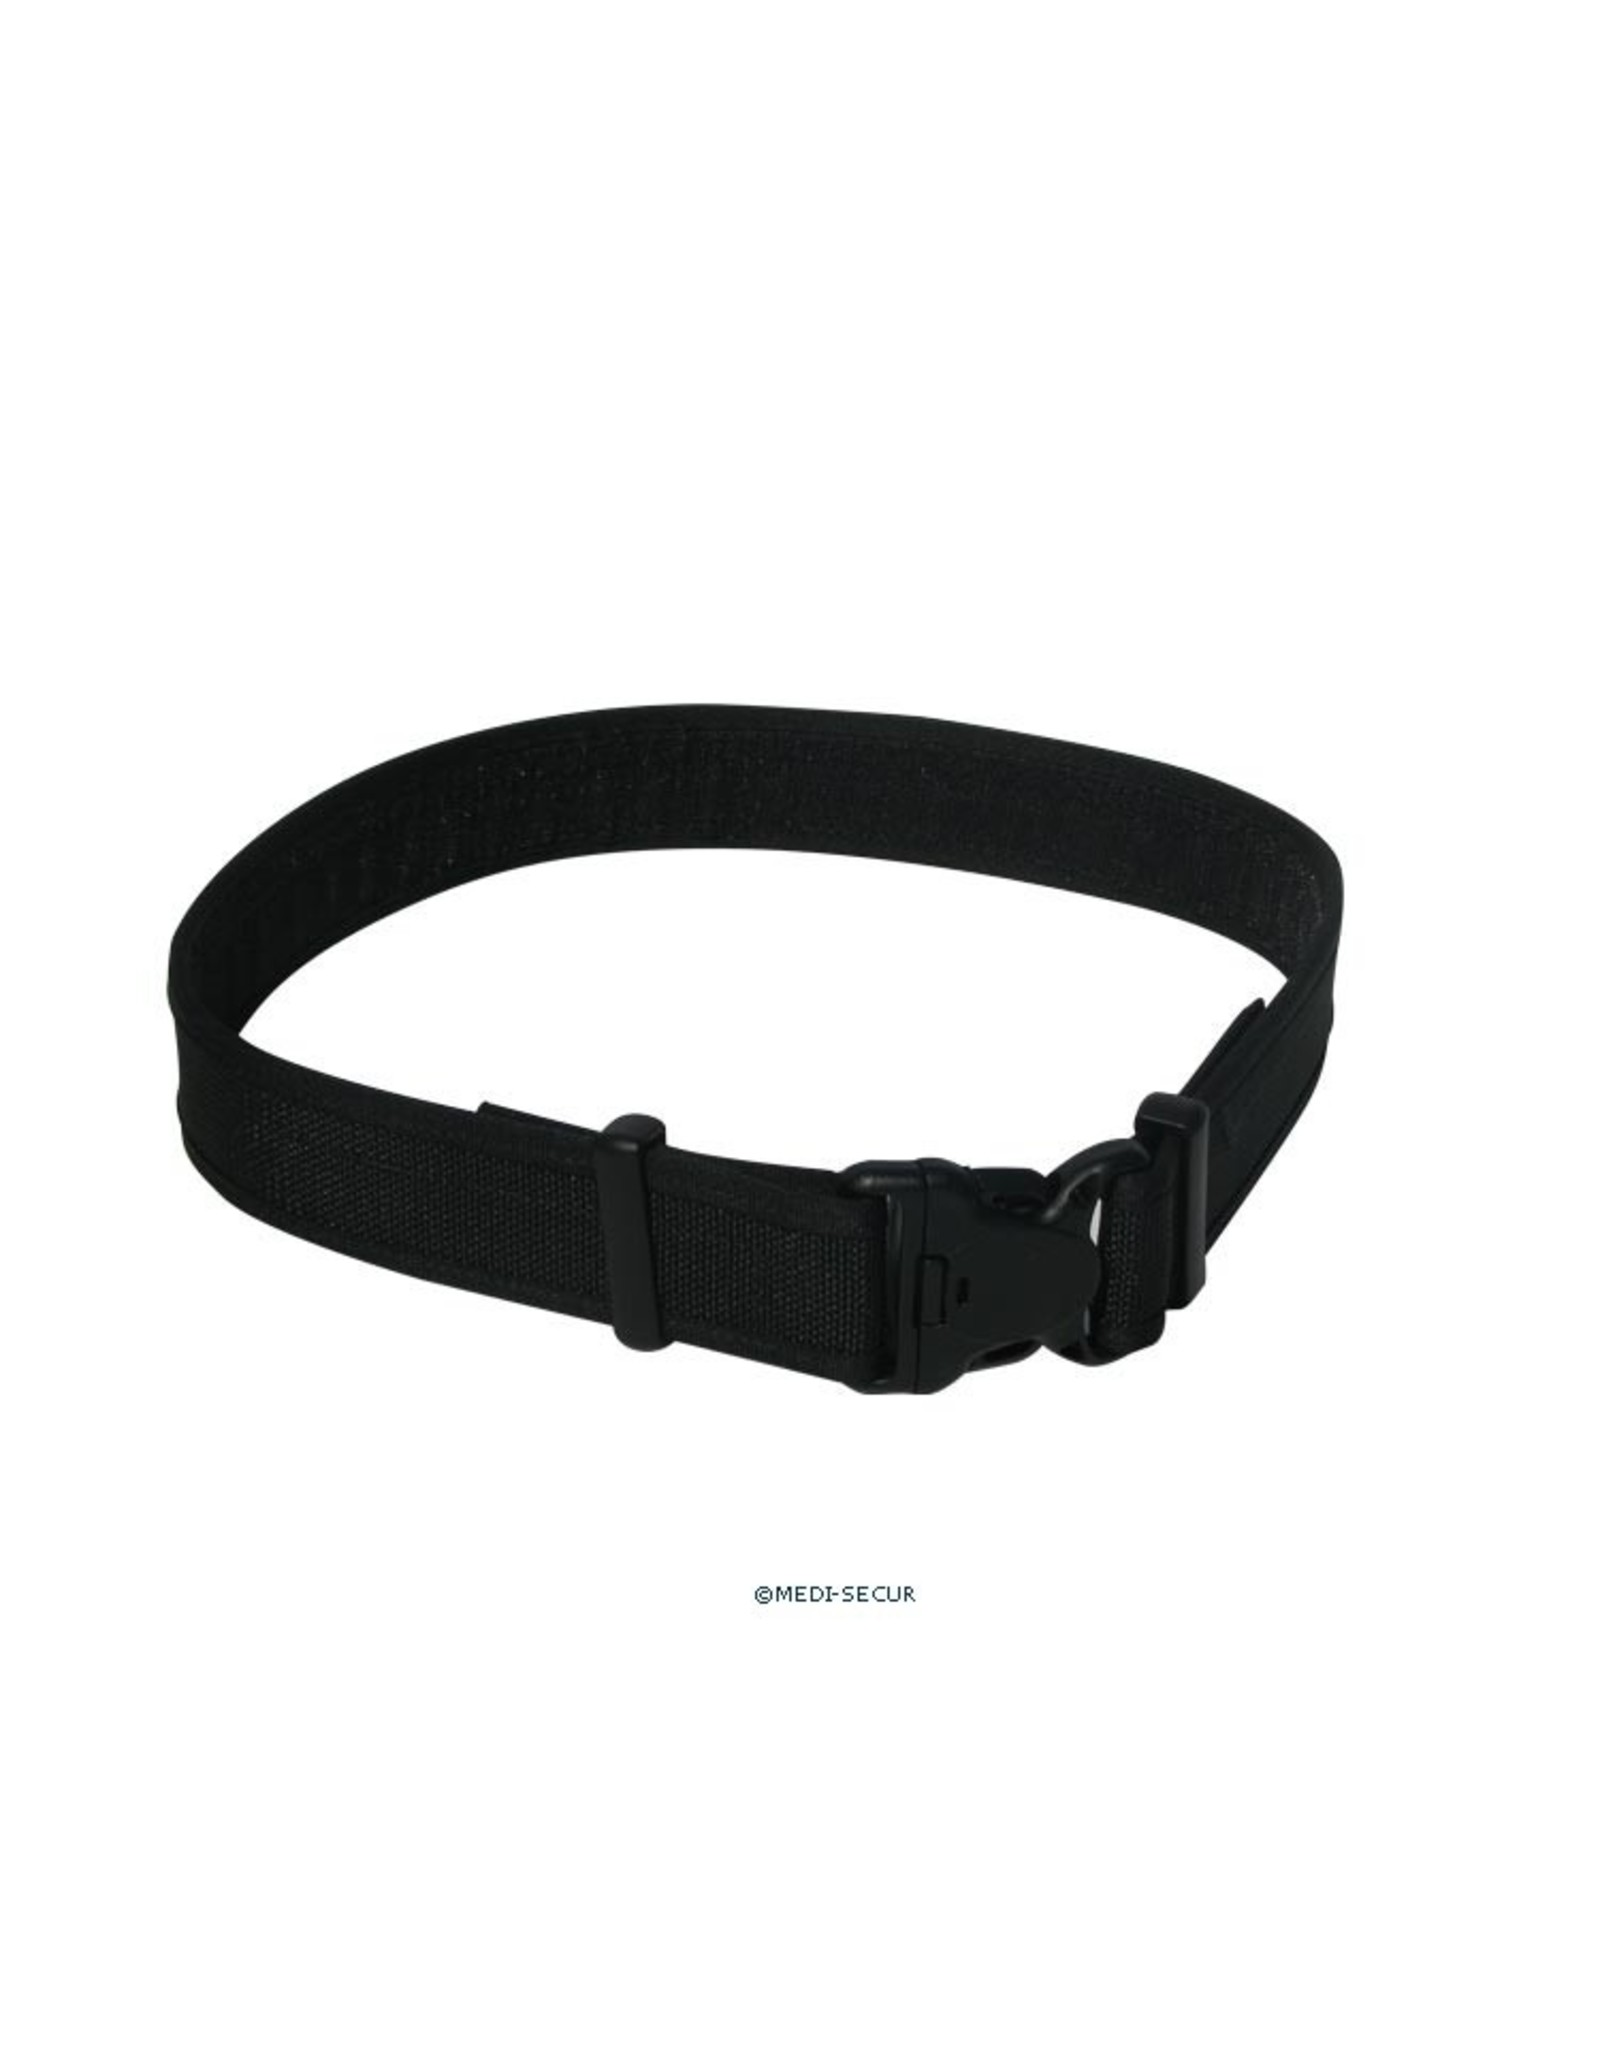 HI-TEC INTERVENTION DUTY BELT EXTERIOR